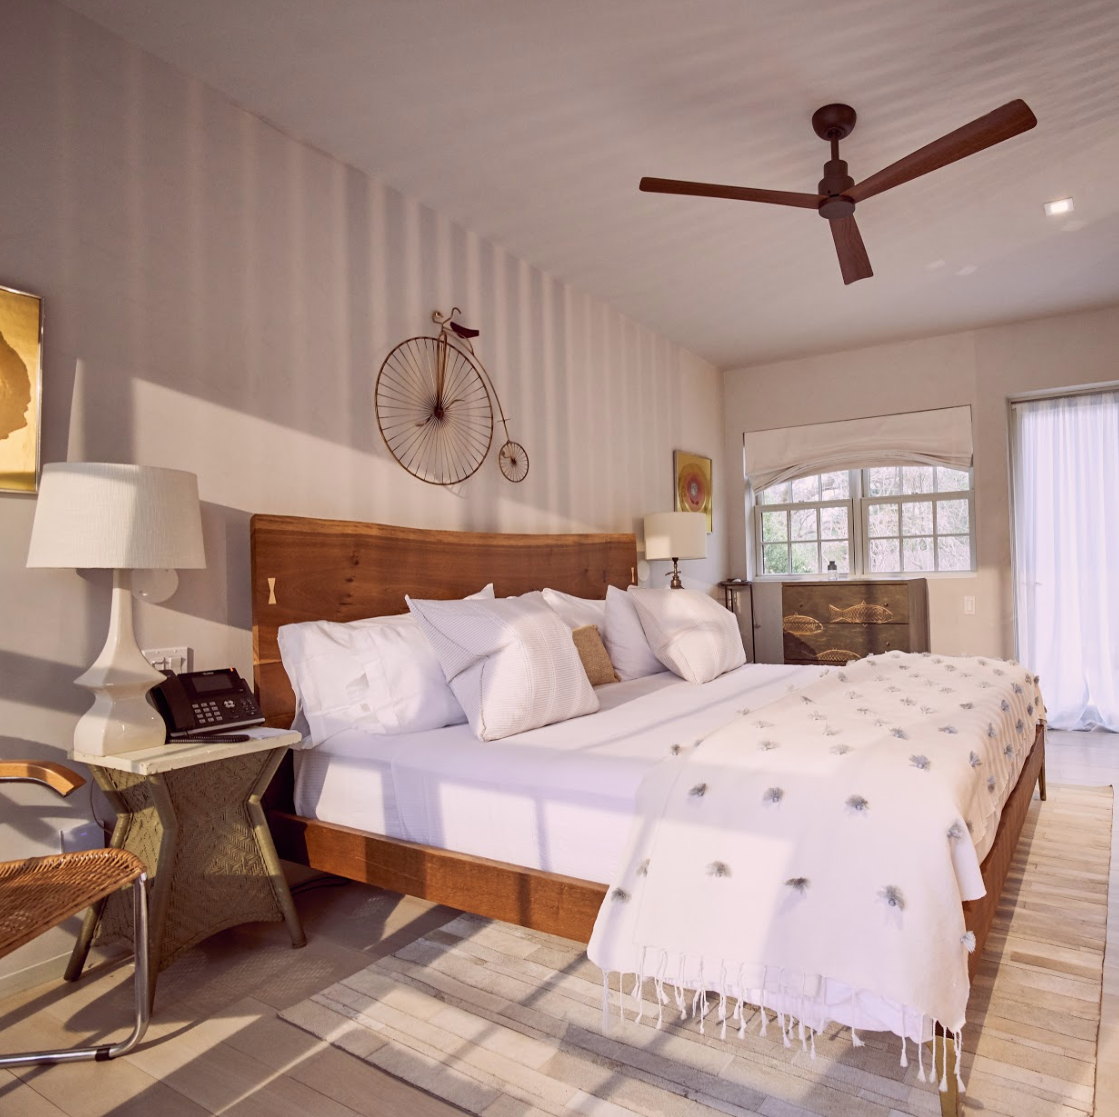 Martha Stewart's Former Hamptons Mansion Has Just Been Turned Into a Boutique Hotel